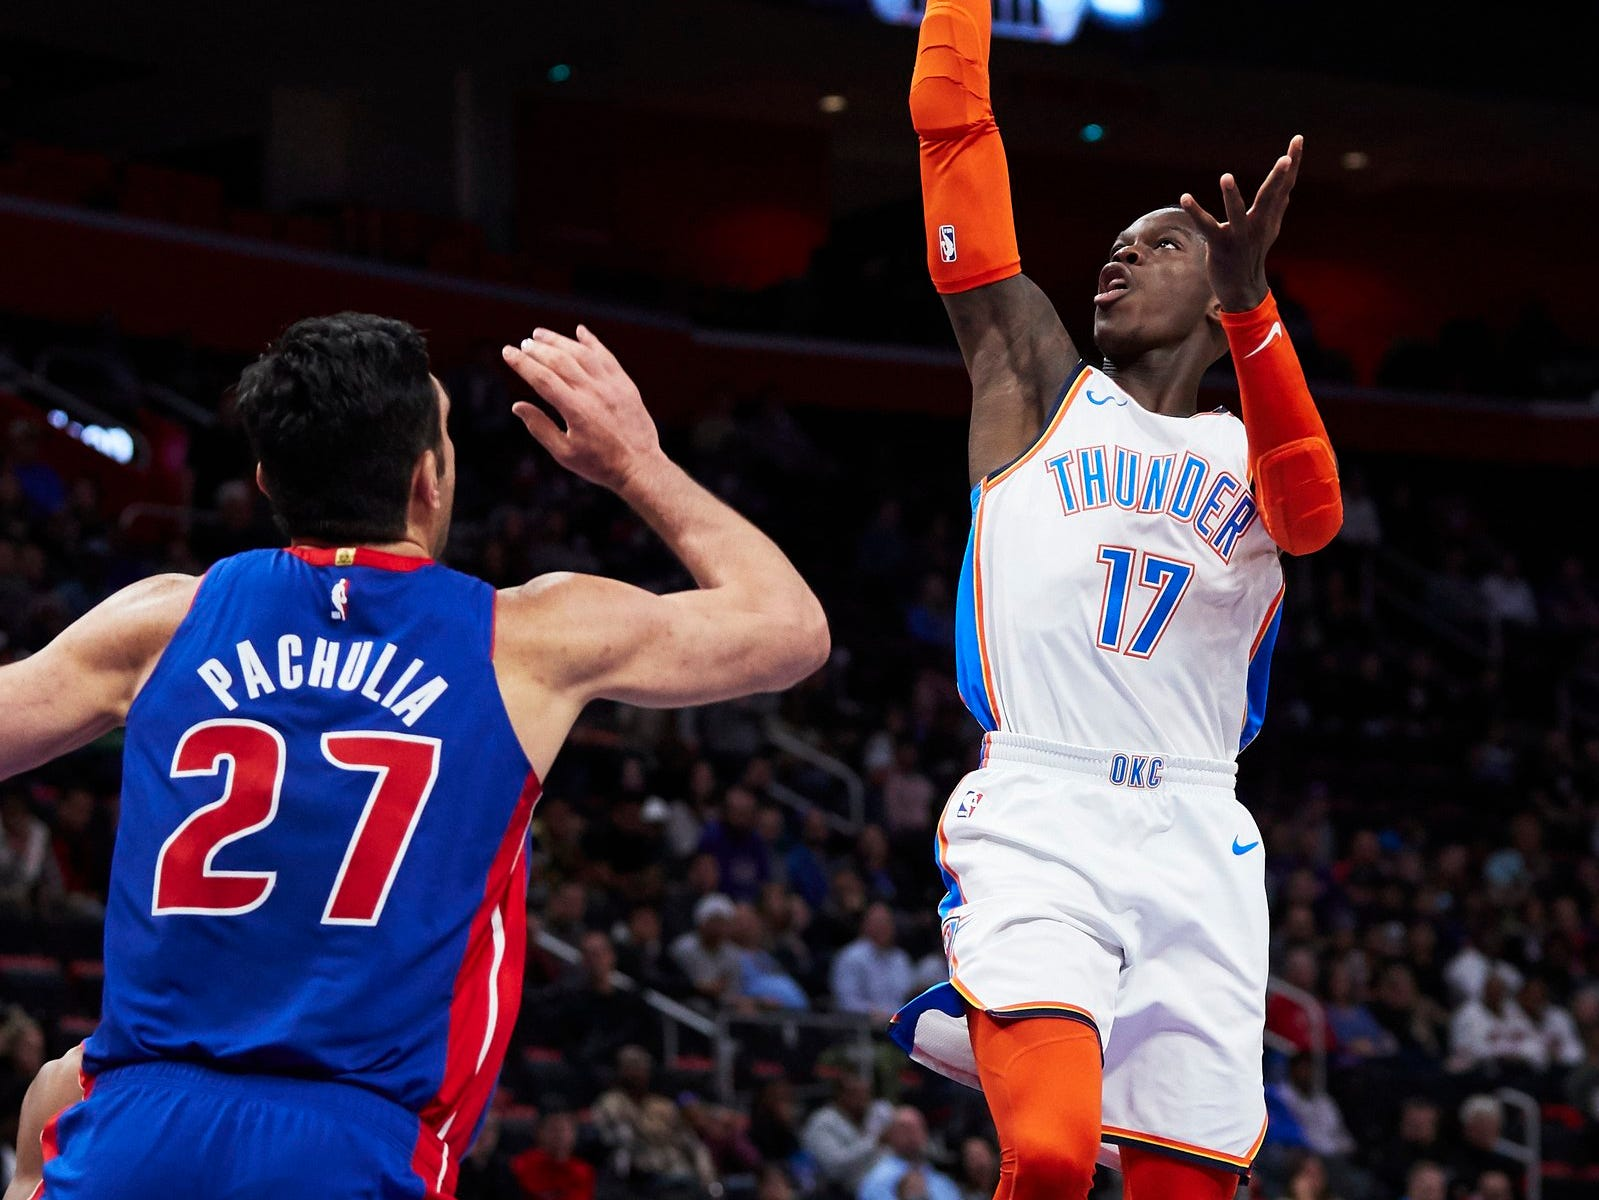 Oklahoma City Thunder guard Dennis Schroder (17) shoots on Detroit Pistons center Zaza Pachulia (27) in the first half at Little Caesars Arena.